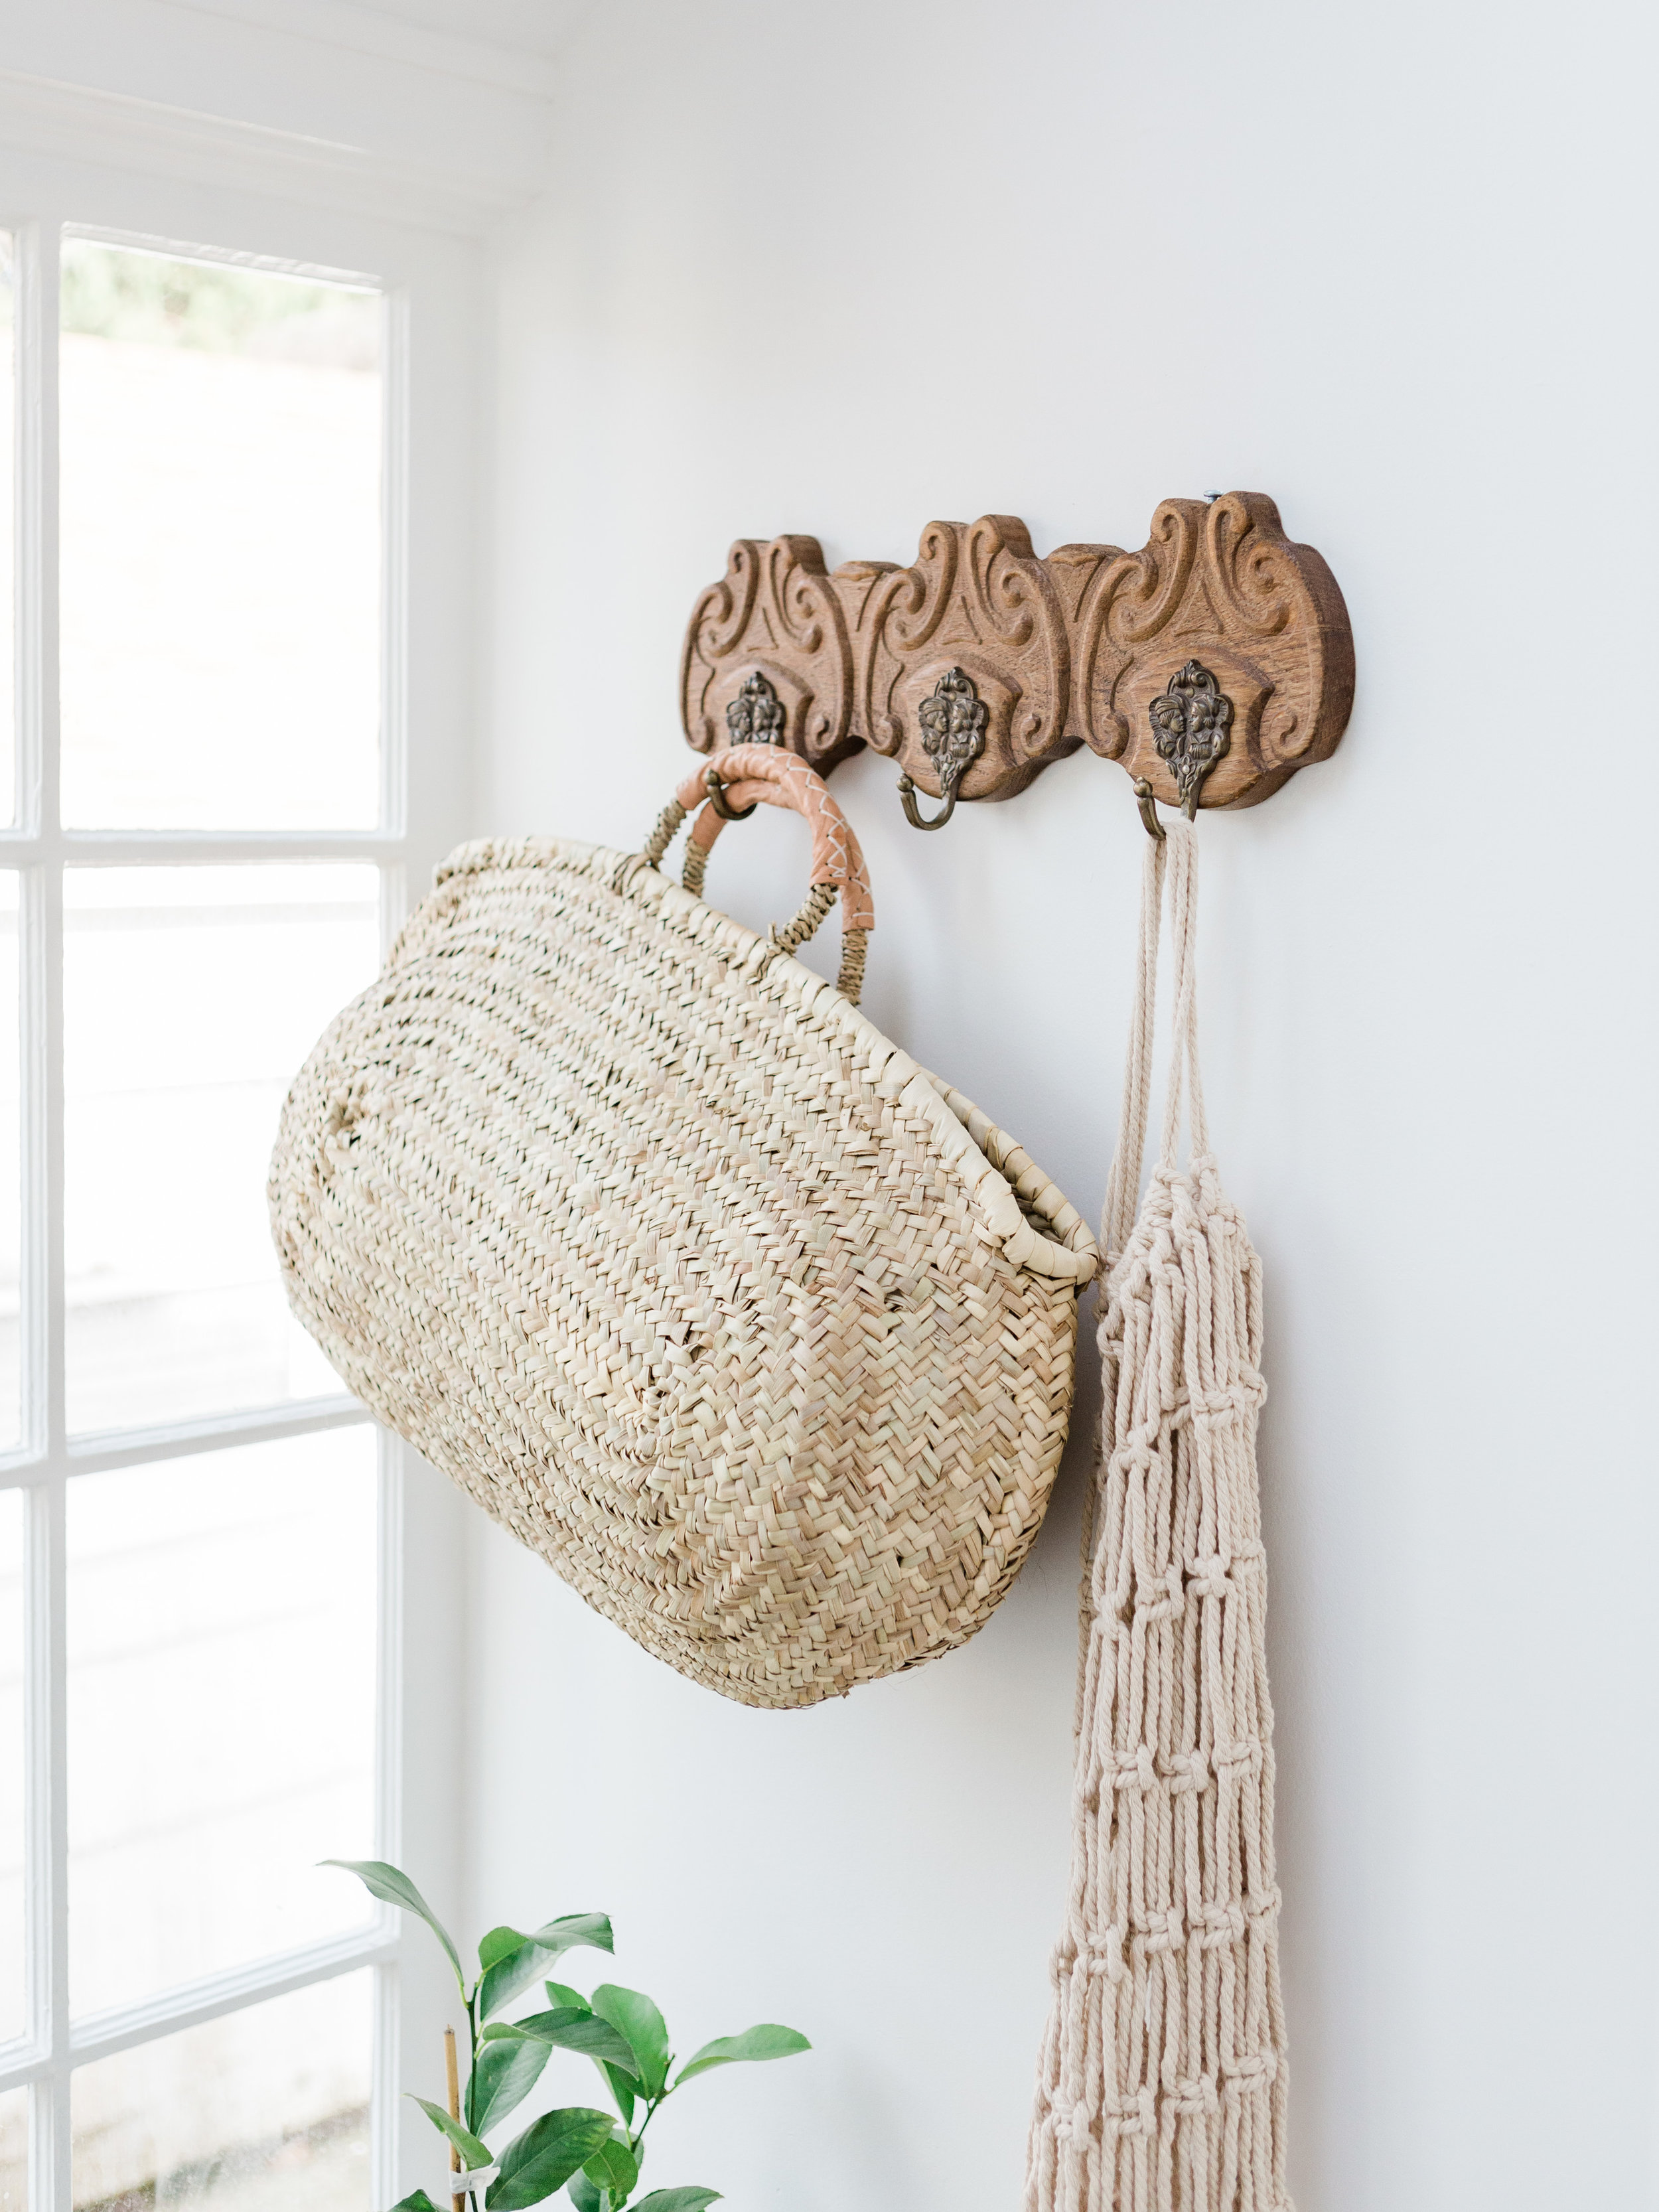 Large oval straw tote basket from foragedhome.com